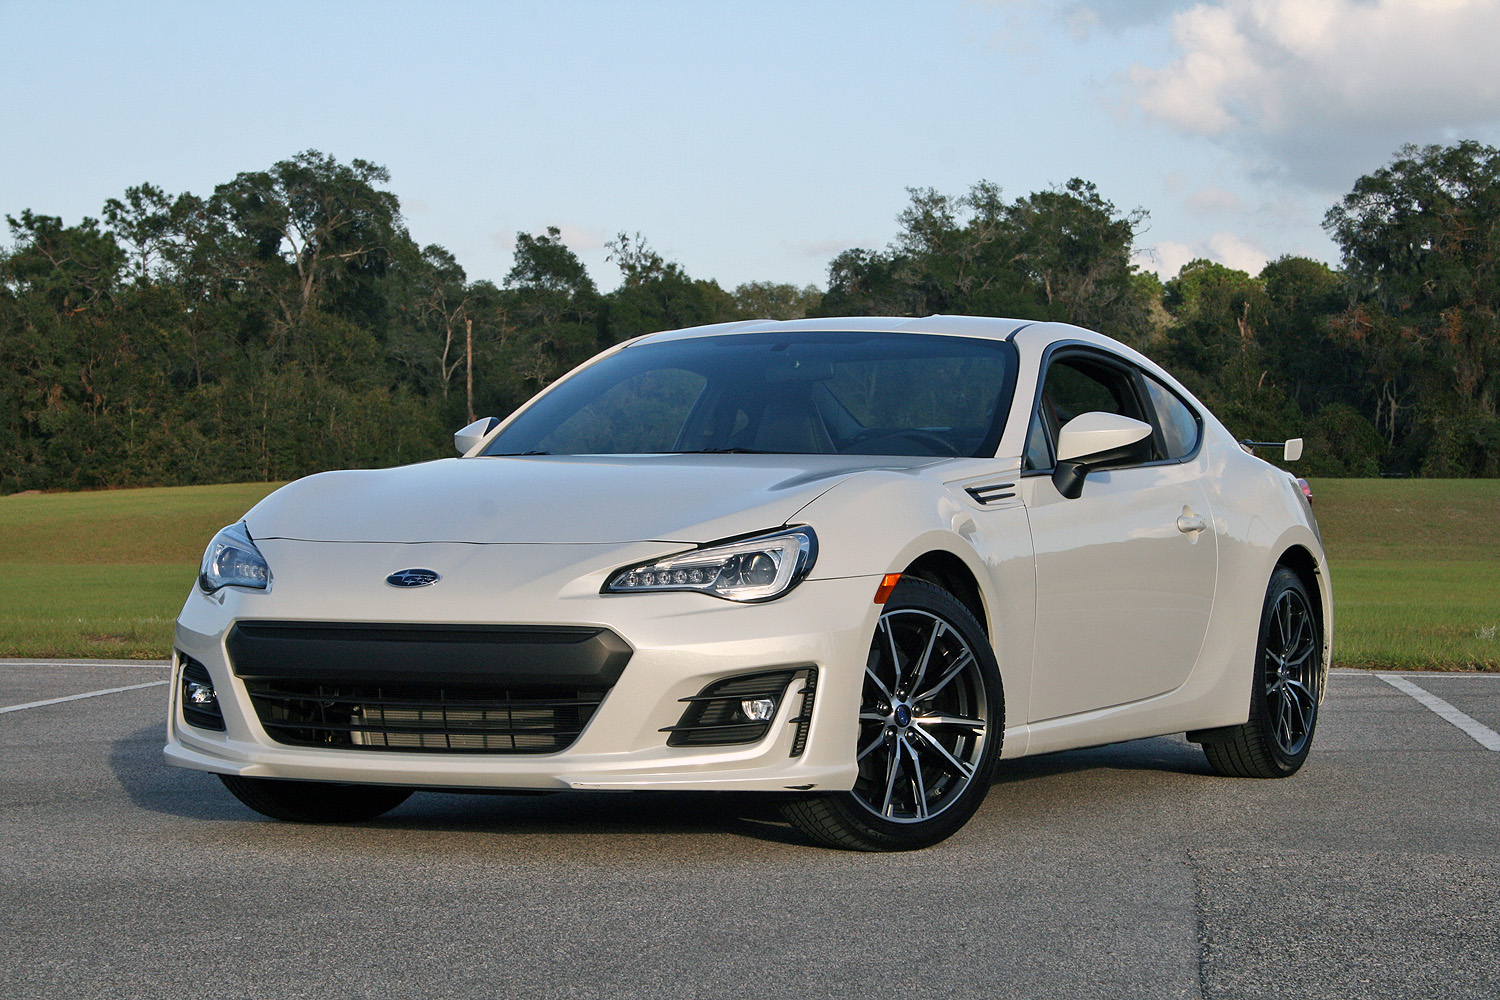 Rumors Say The Next-Gen Subaru BRZ And Toyota 86 Are